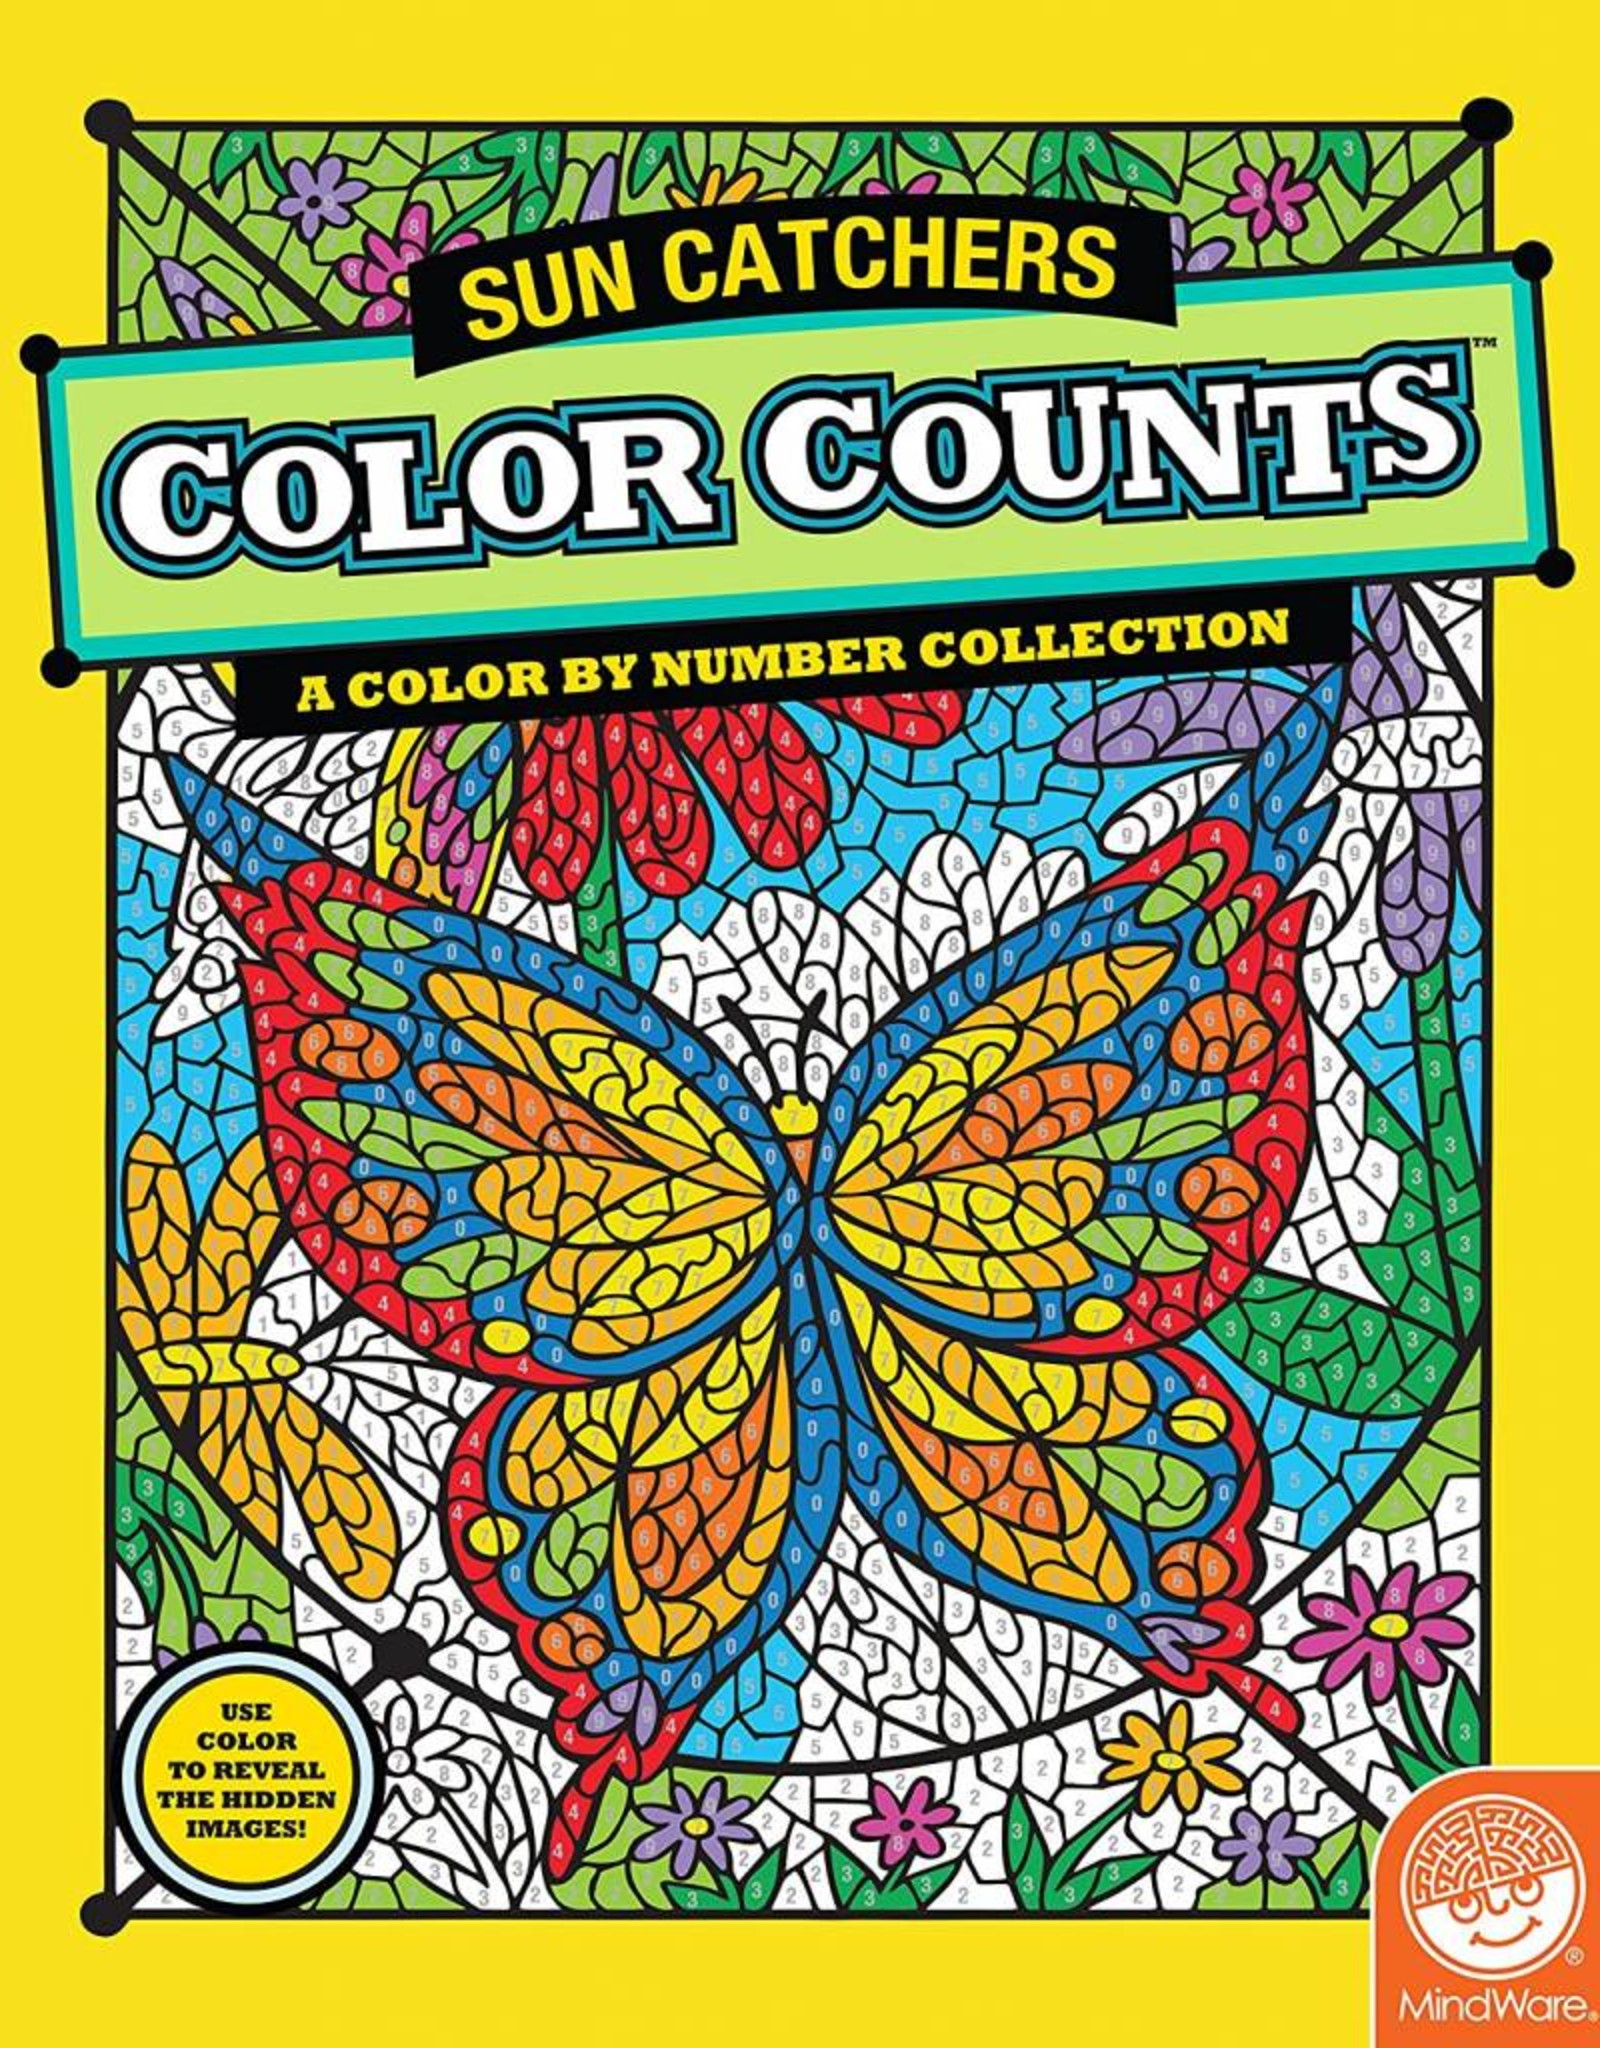 Mindware COLOR COUNTS: SUN CATCHERS